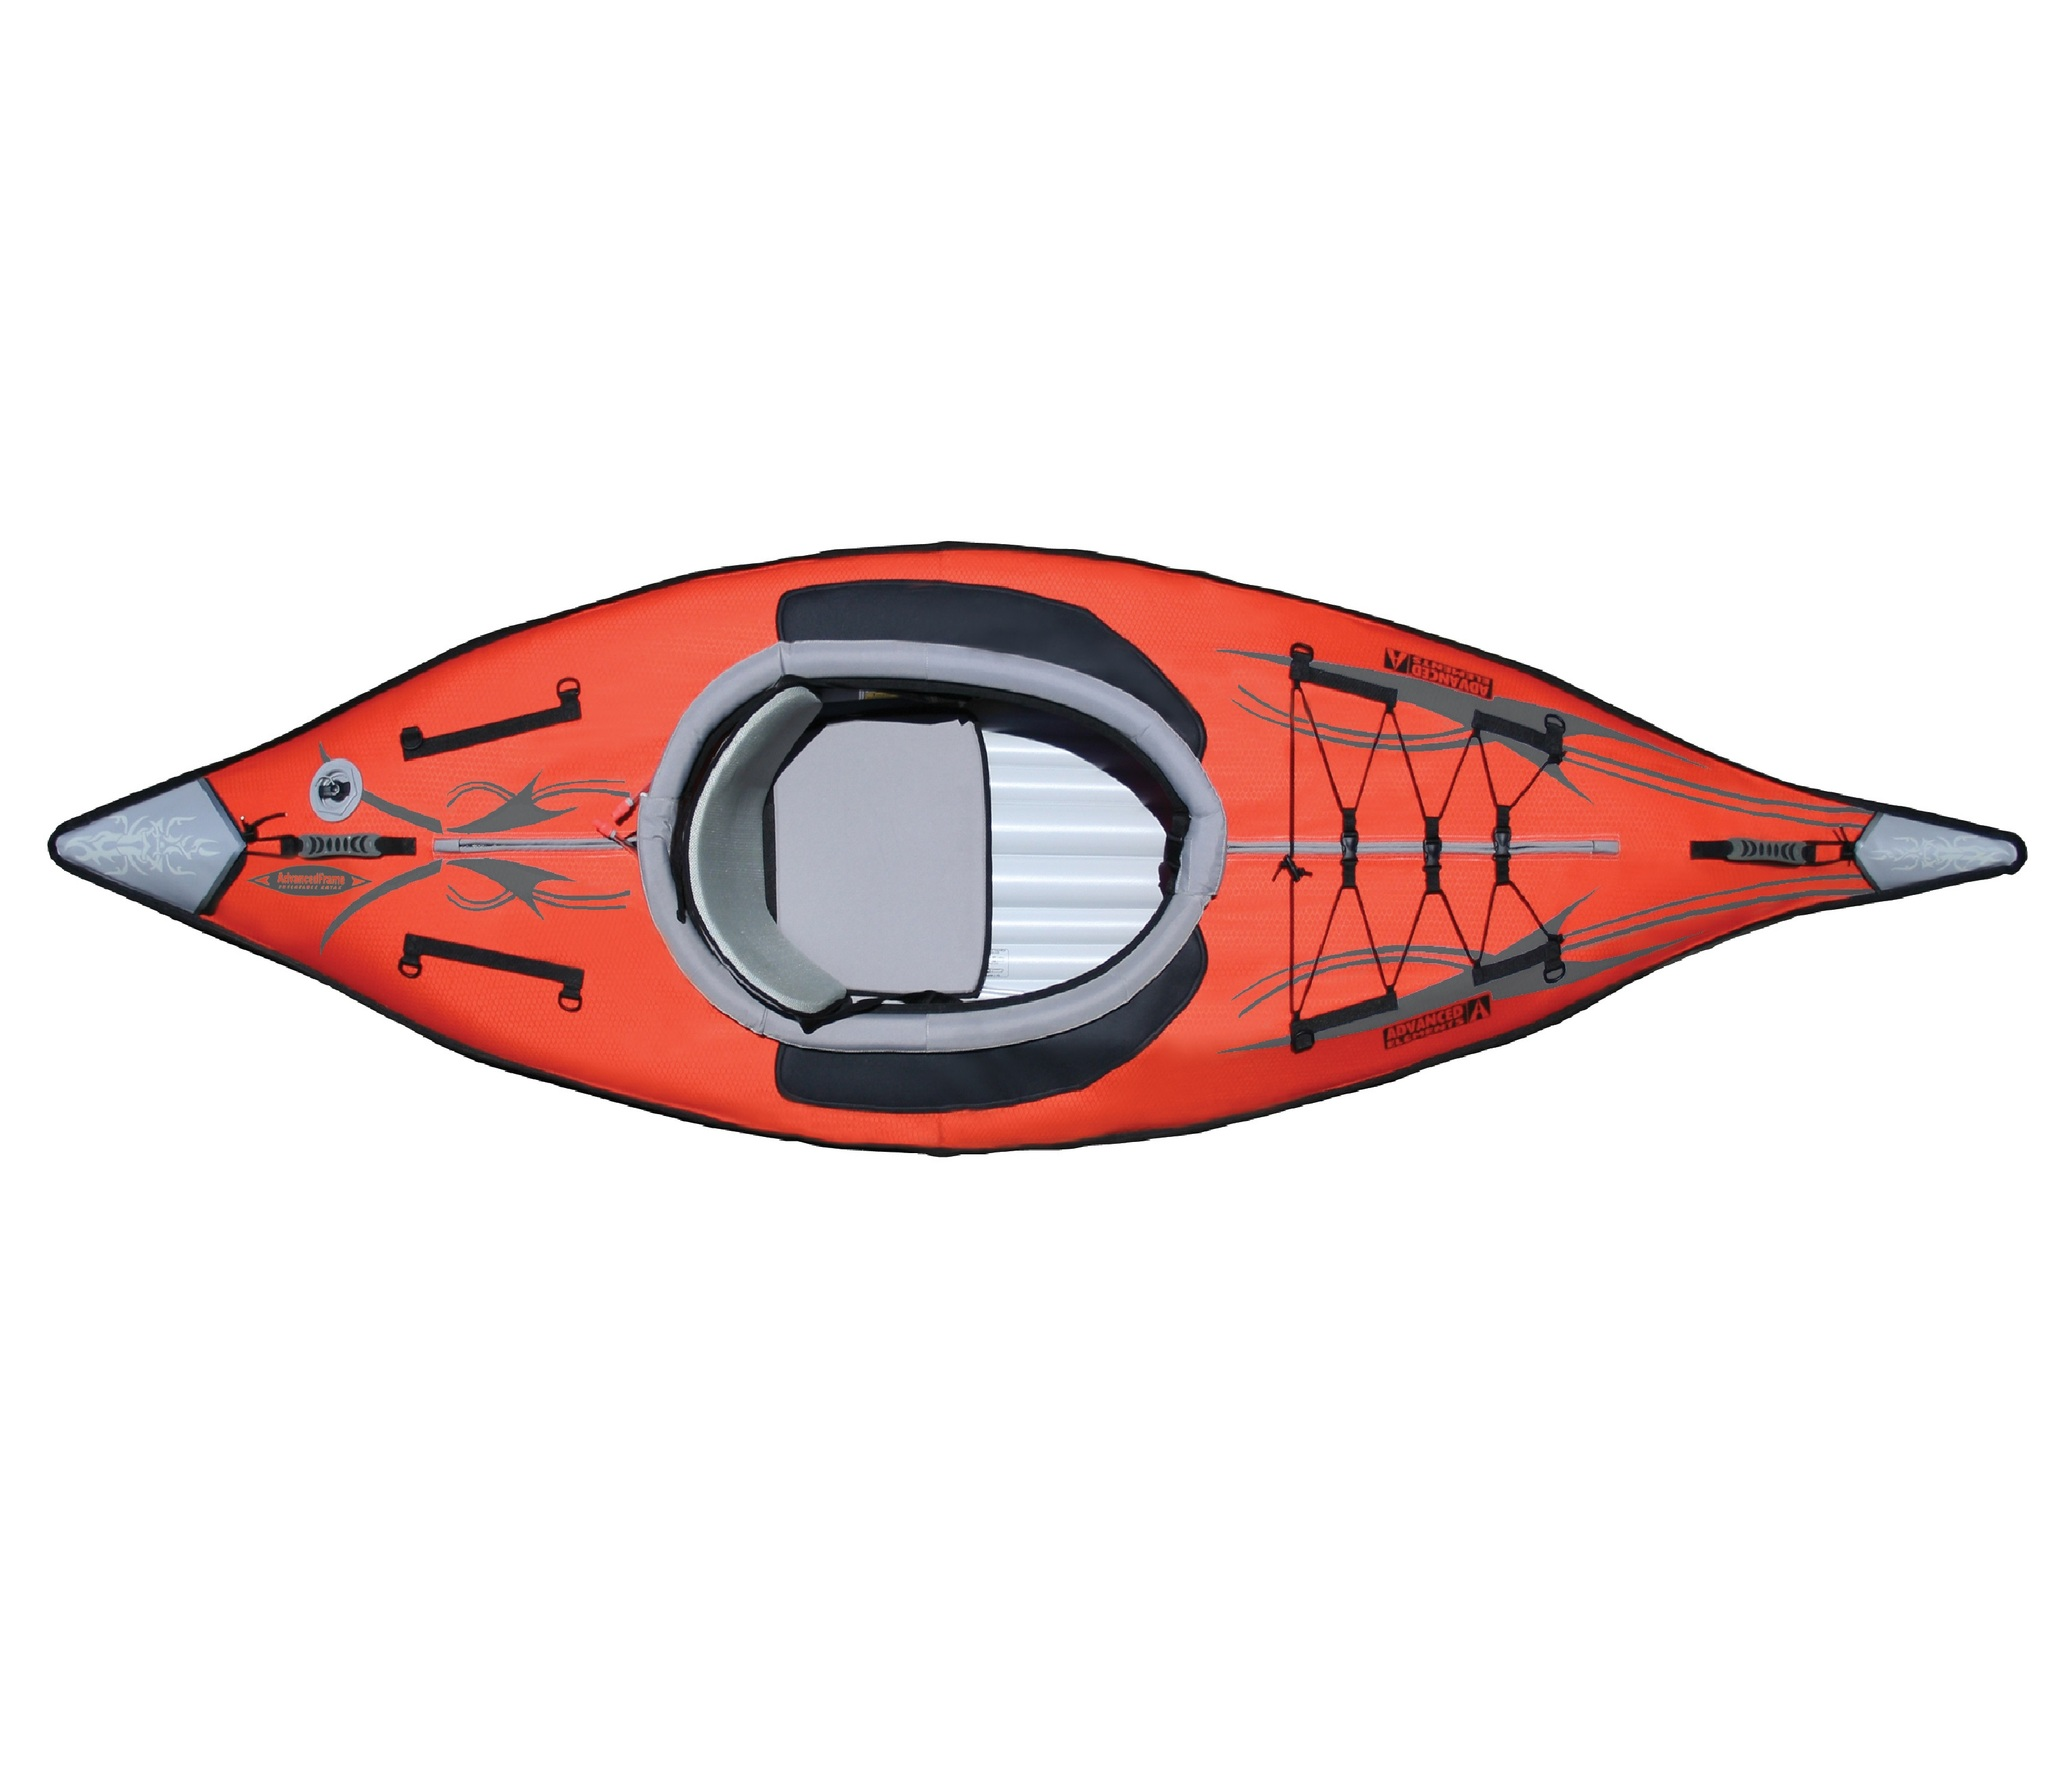 Day Touring Advancedframe® inflatable kayak, single